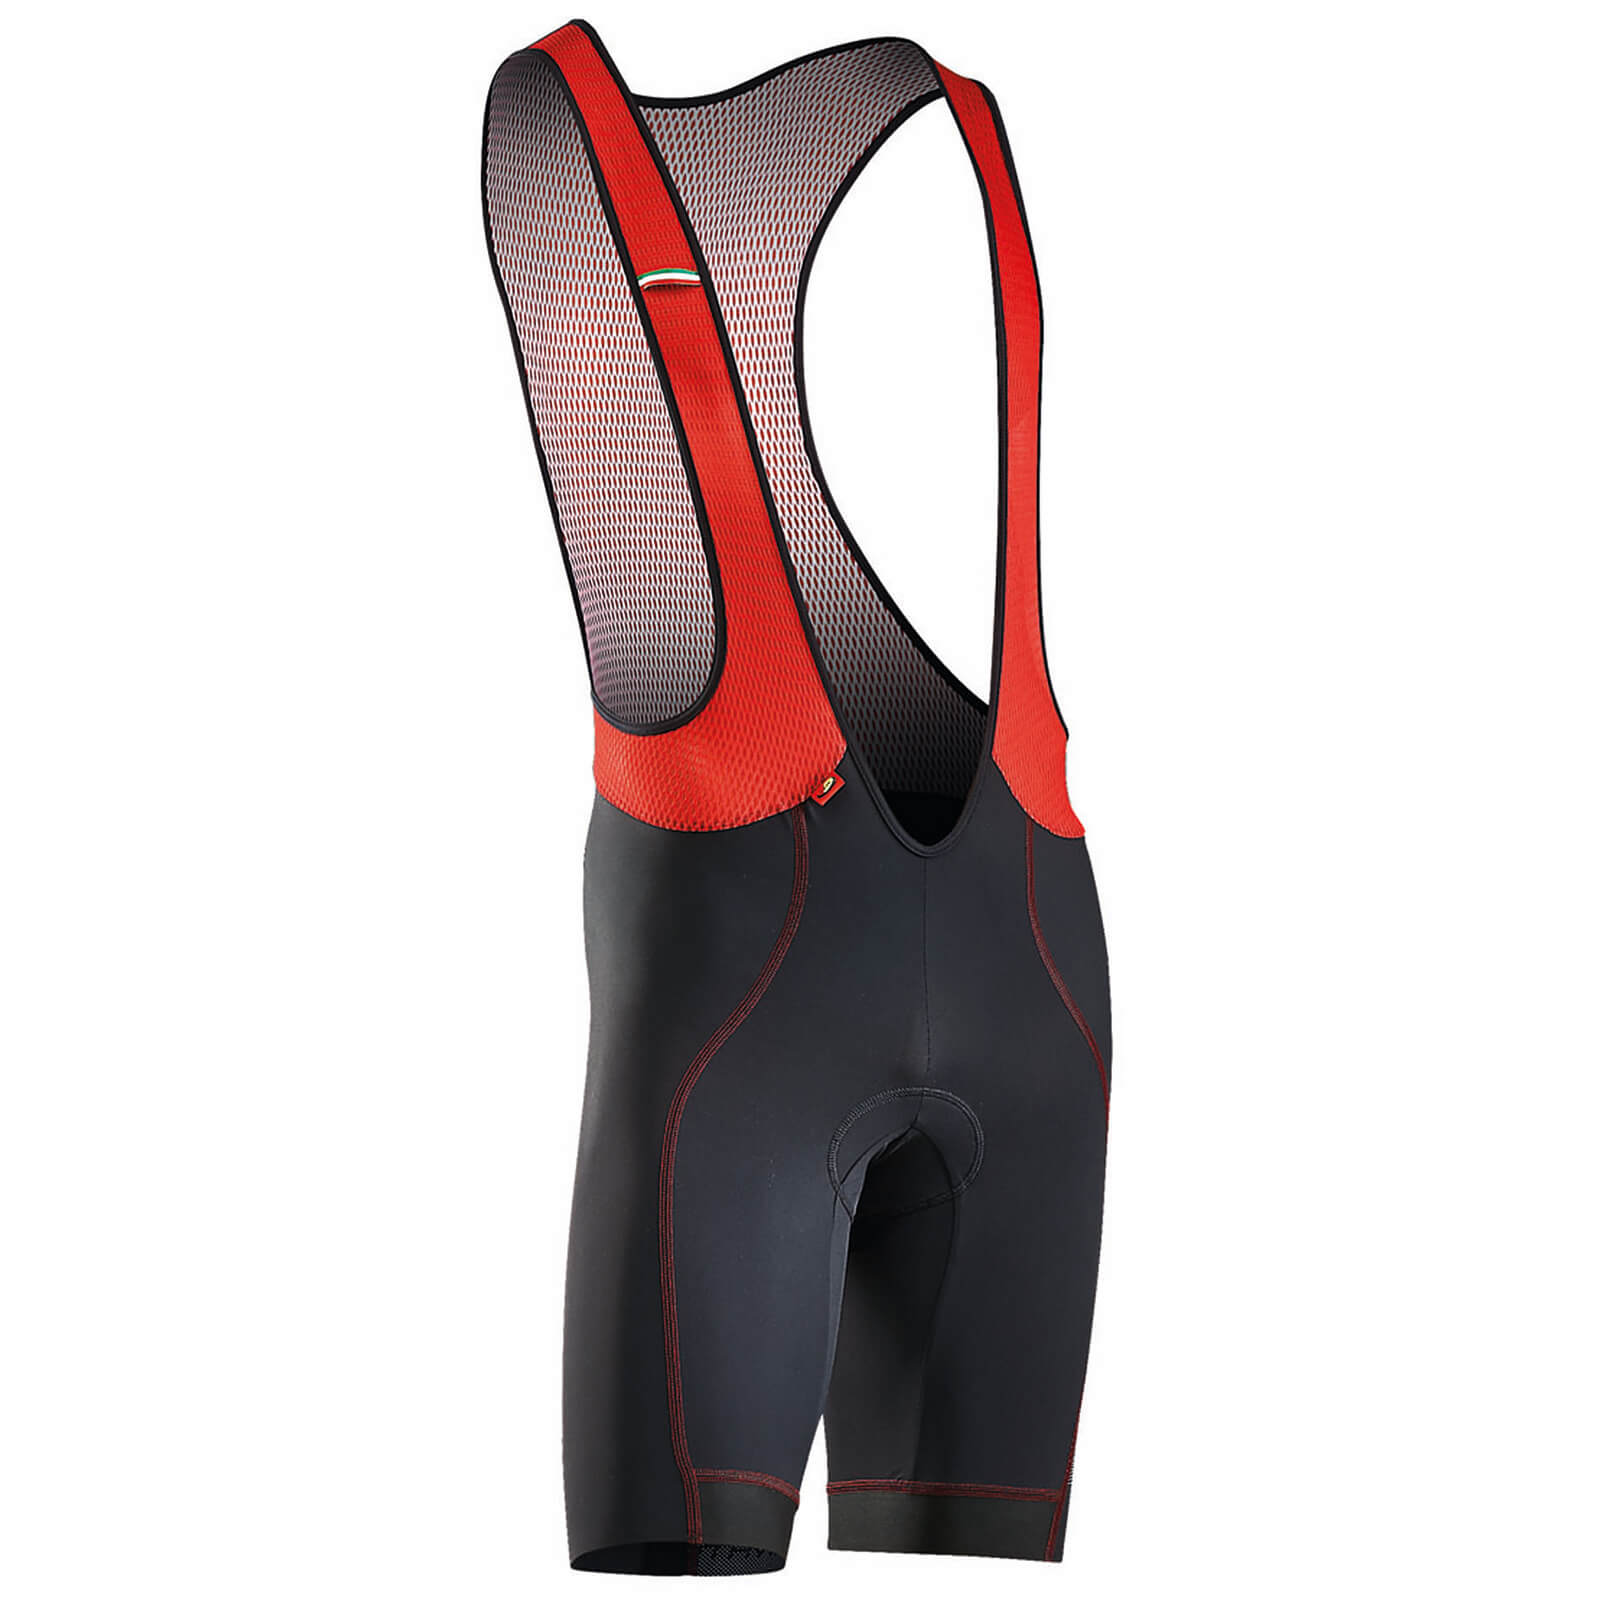 Northwave Extreme 3 Bib Shorts - Black/Red